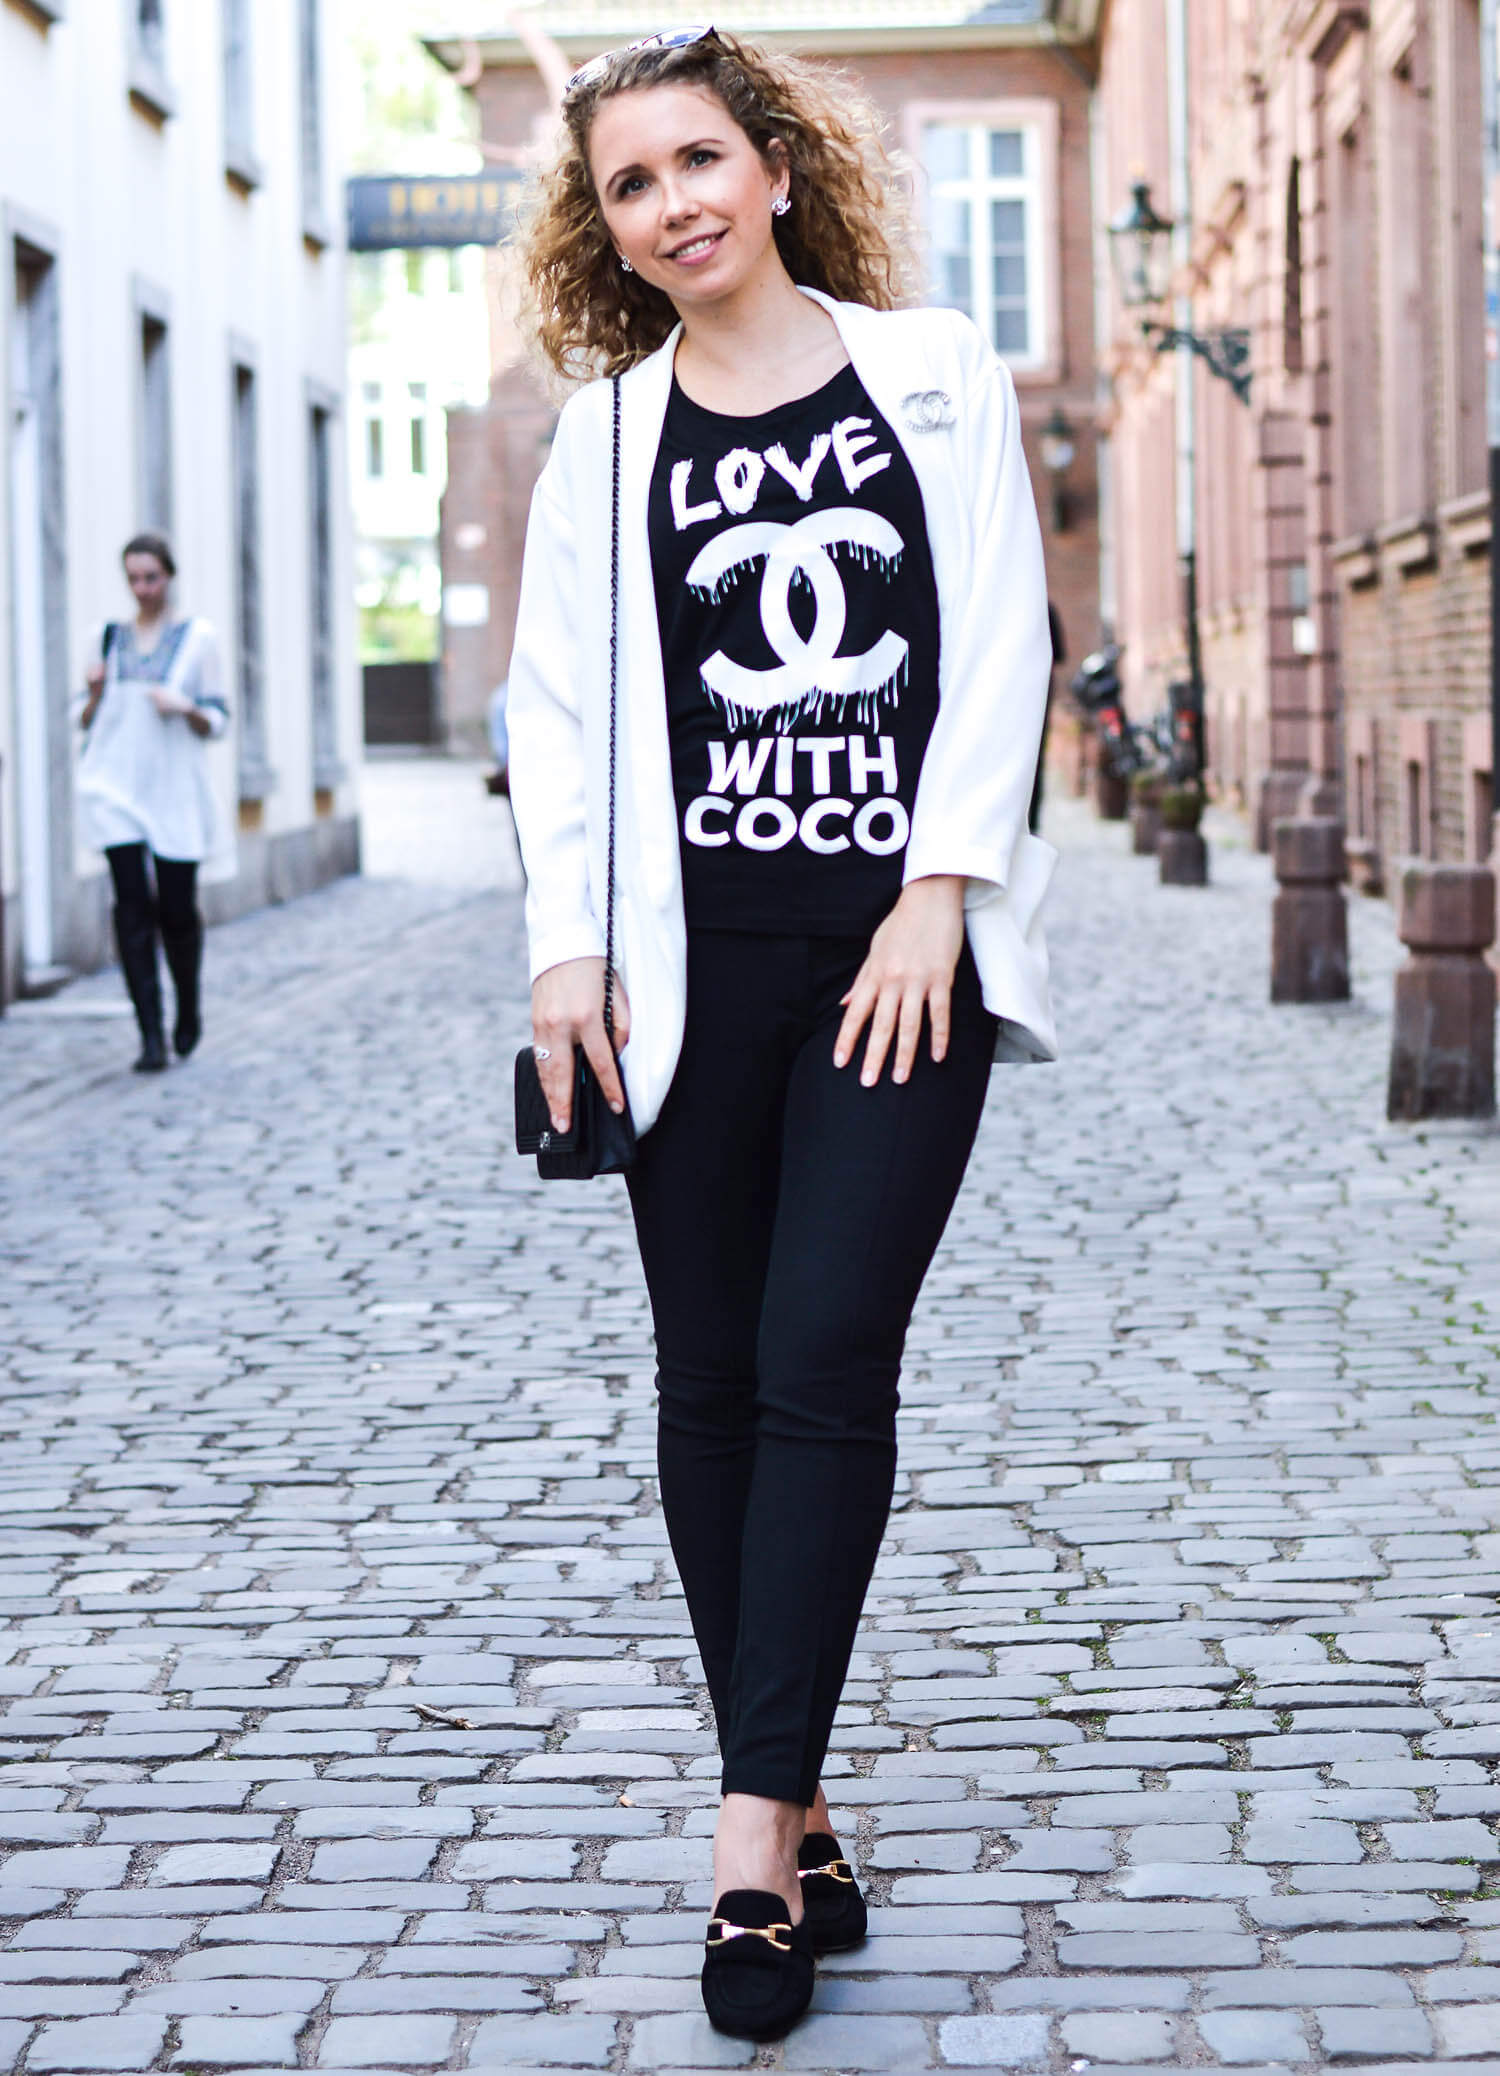 Kationette-fashionblog-Outfit-Coco-Chanel-streetstyle-blackandwhite-mules